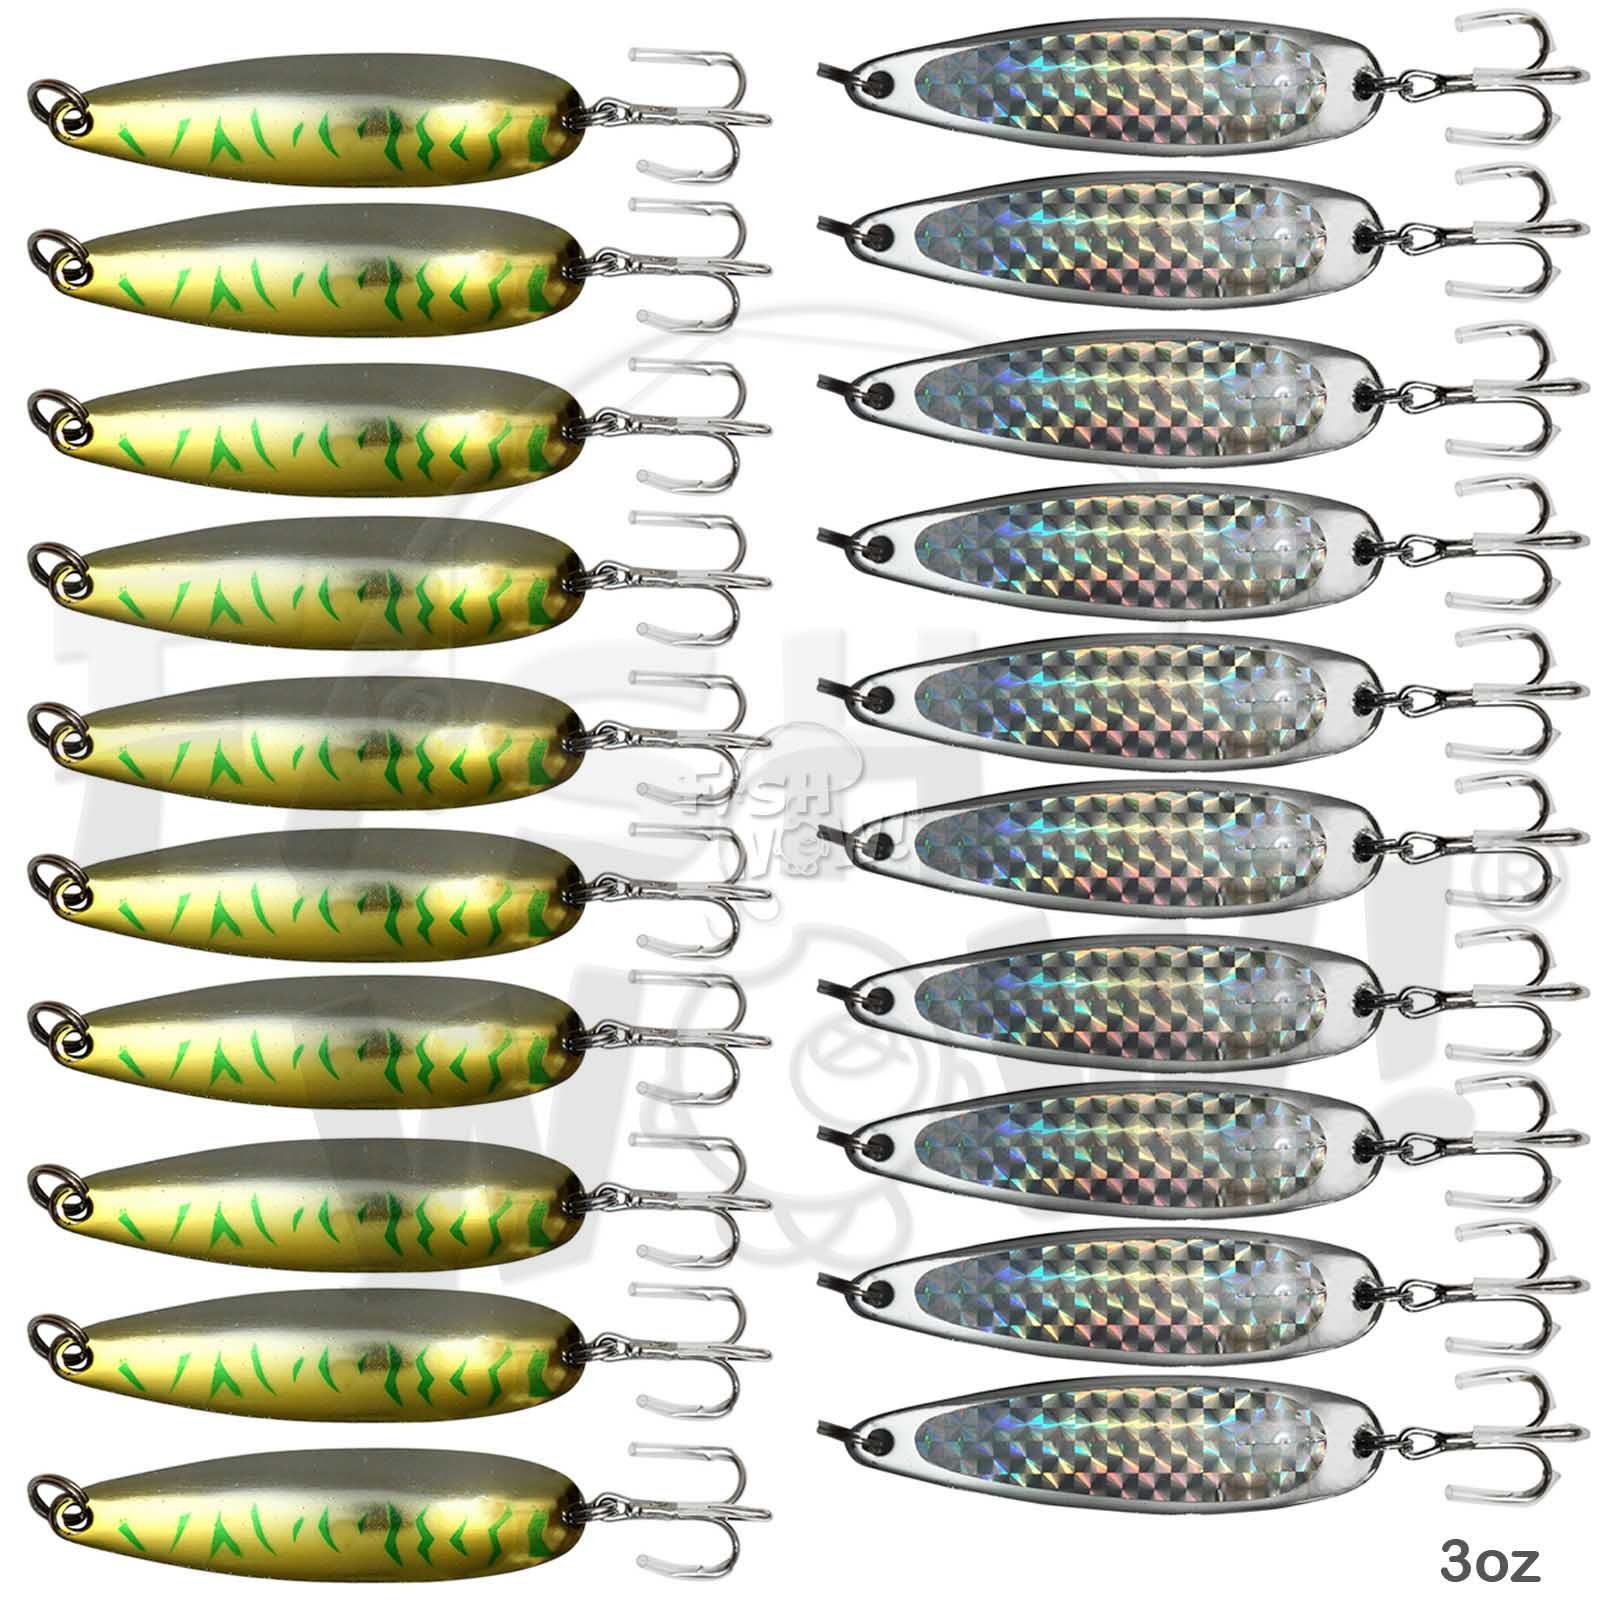 Fish WOW! 20pcs 3oz Fishing Spoon with a Treble Hook Fish Jigging Casting Lure Baits - 2 Colors